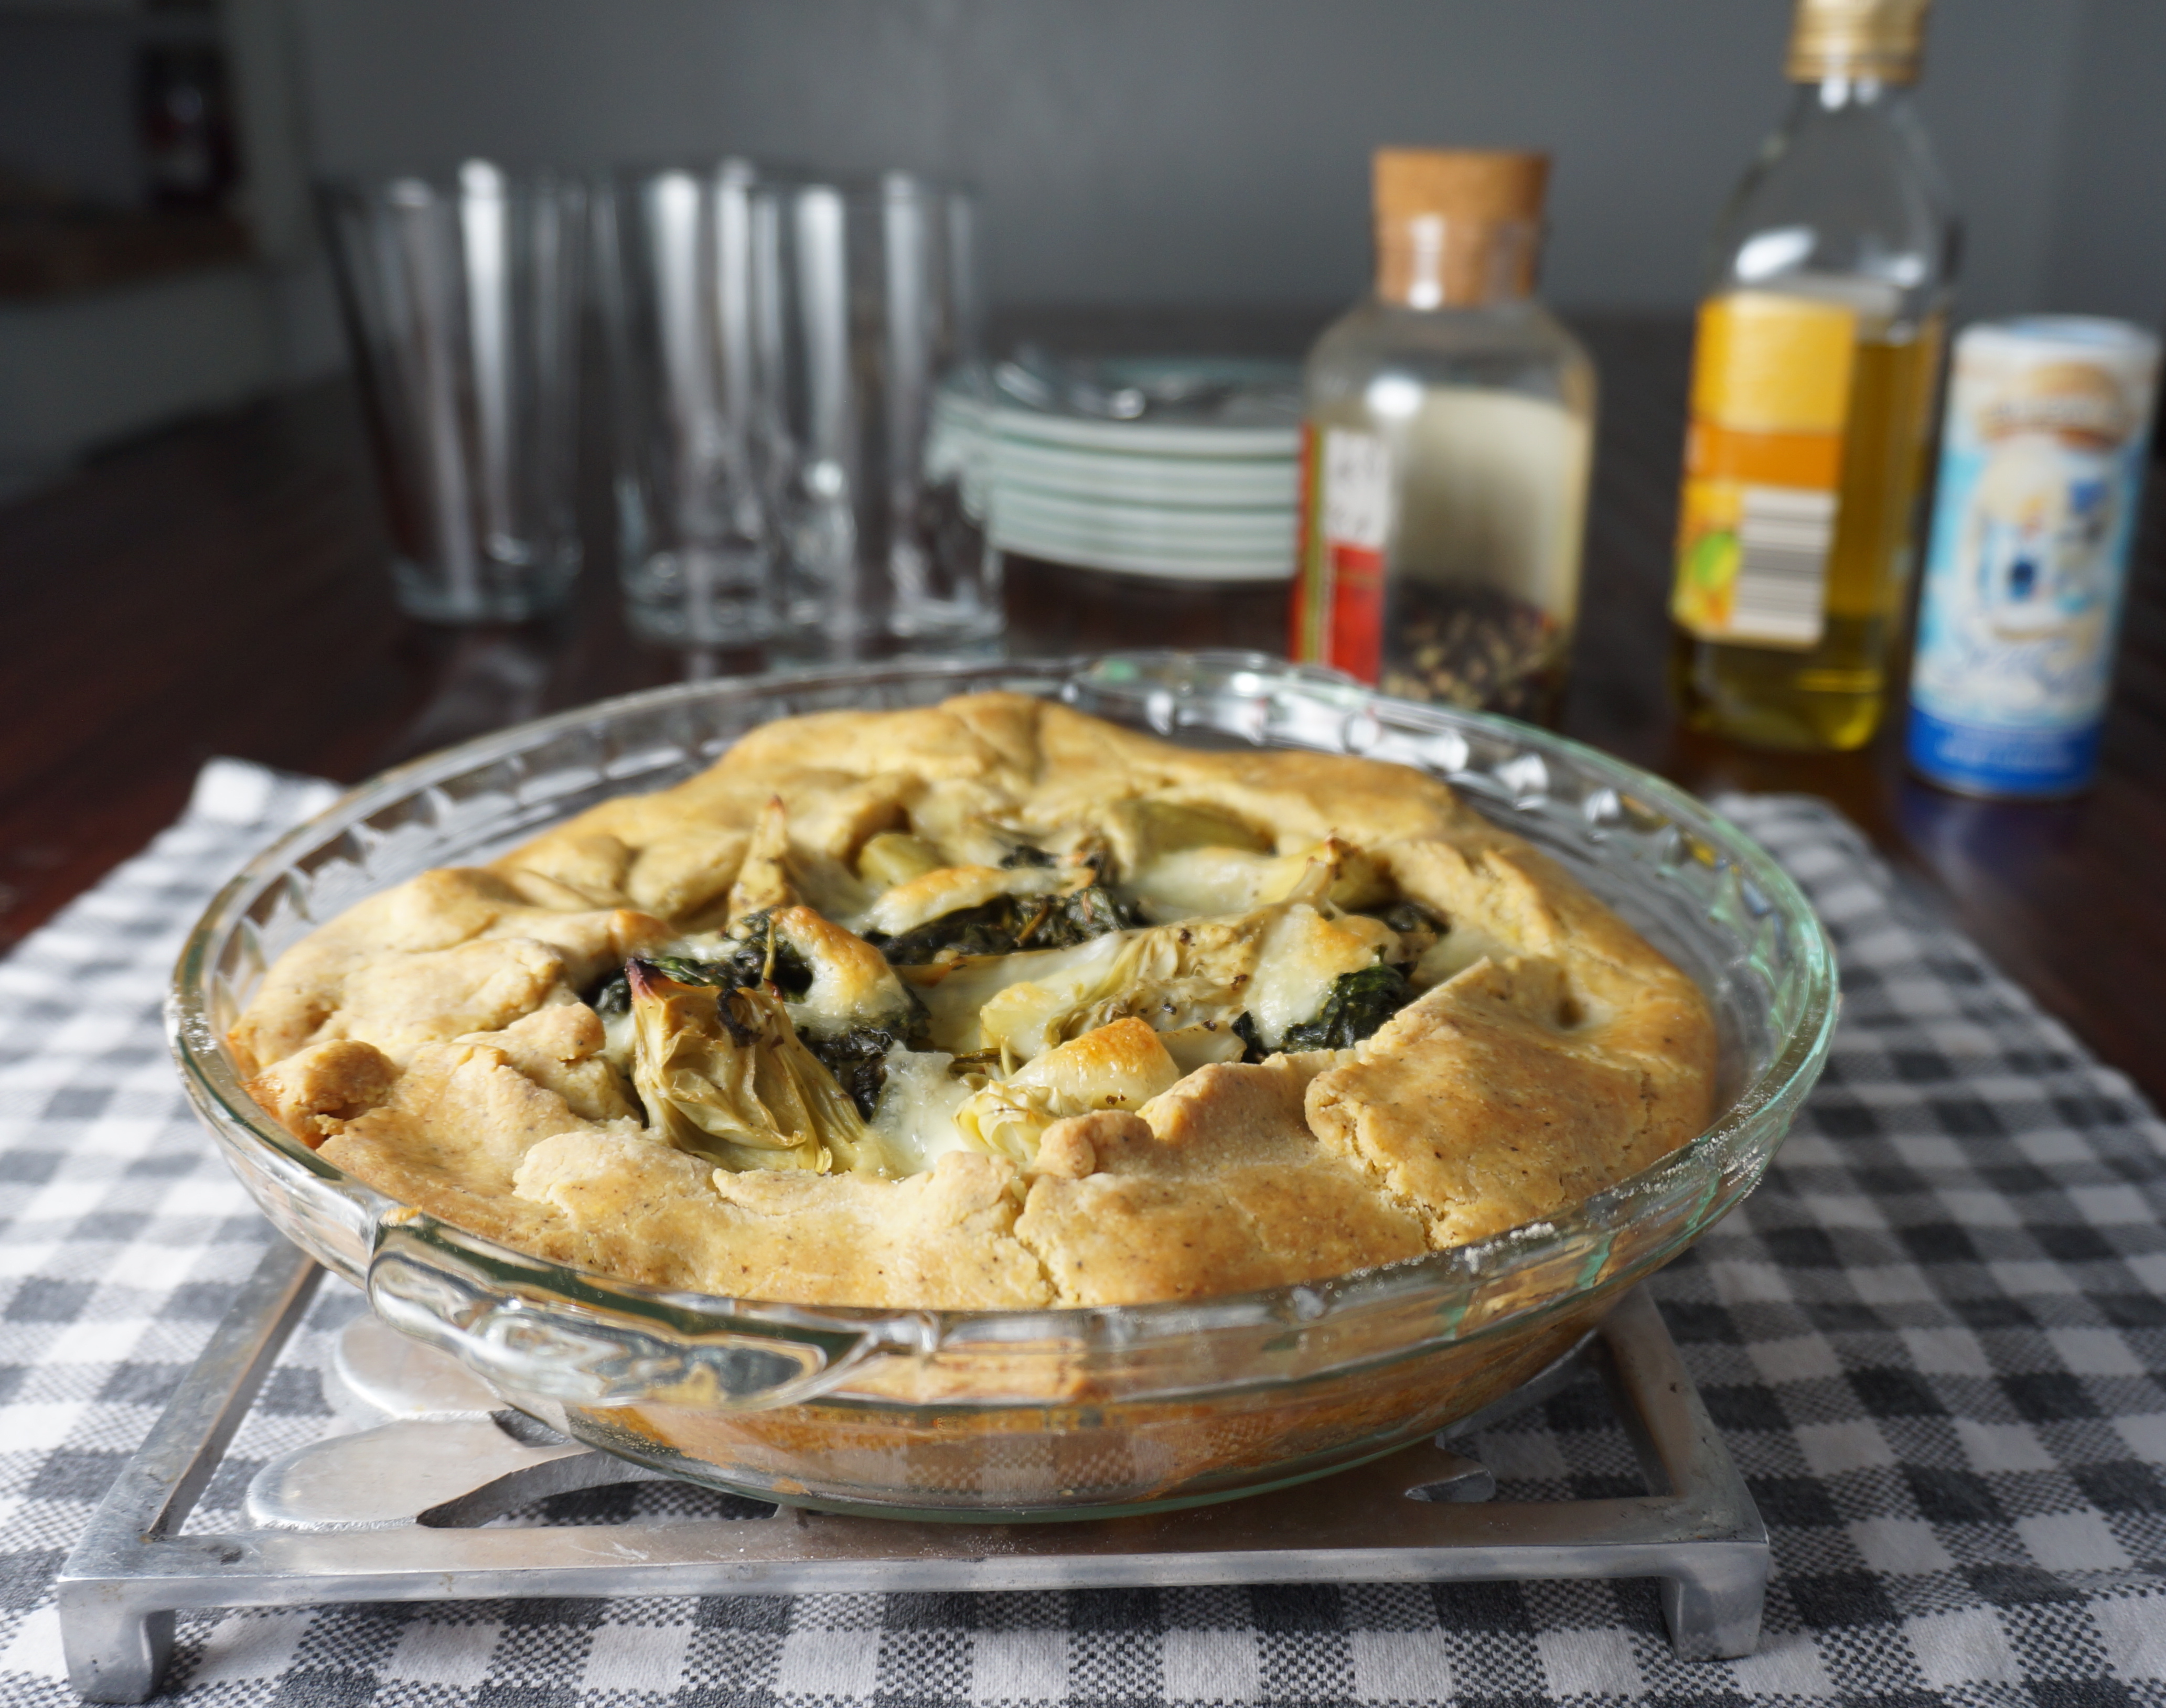 Savory pie - spinach, artichoke and mozzarella